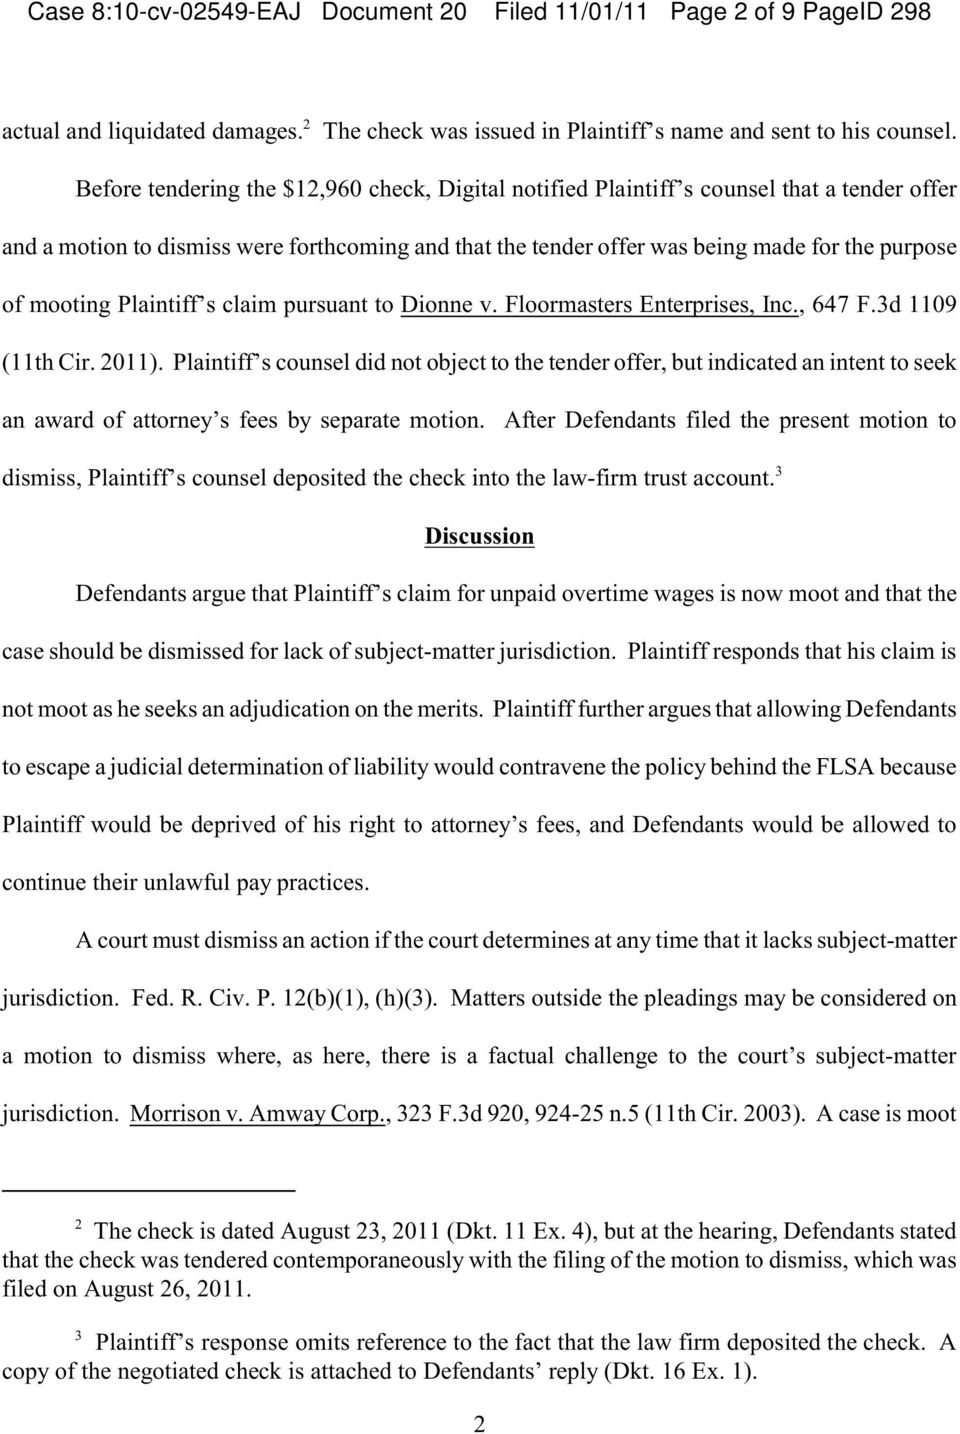 mooting Plaintiff s claim pursuant to Dionne v. Floormasters Enterprises, Inc., 647 F.3d 1109 (11th Cir. 2011).